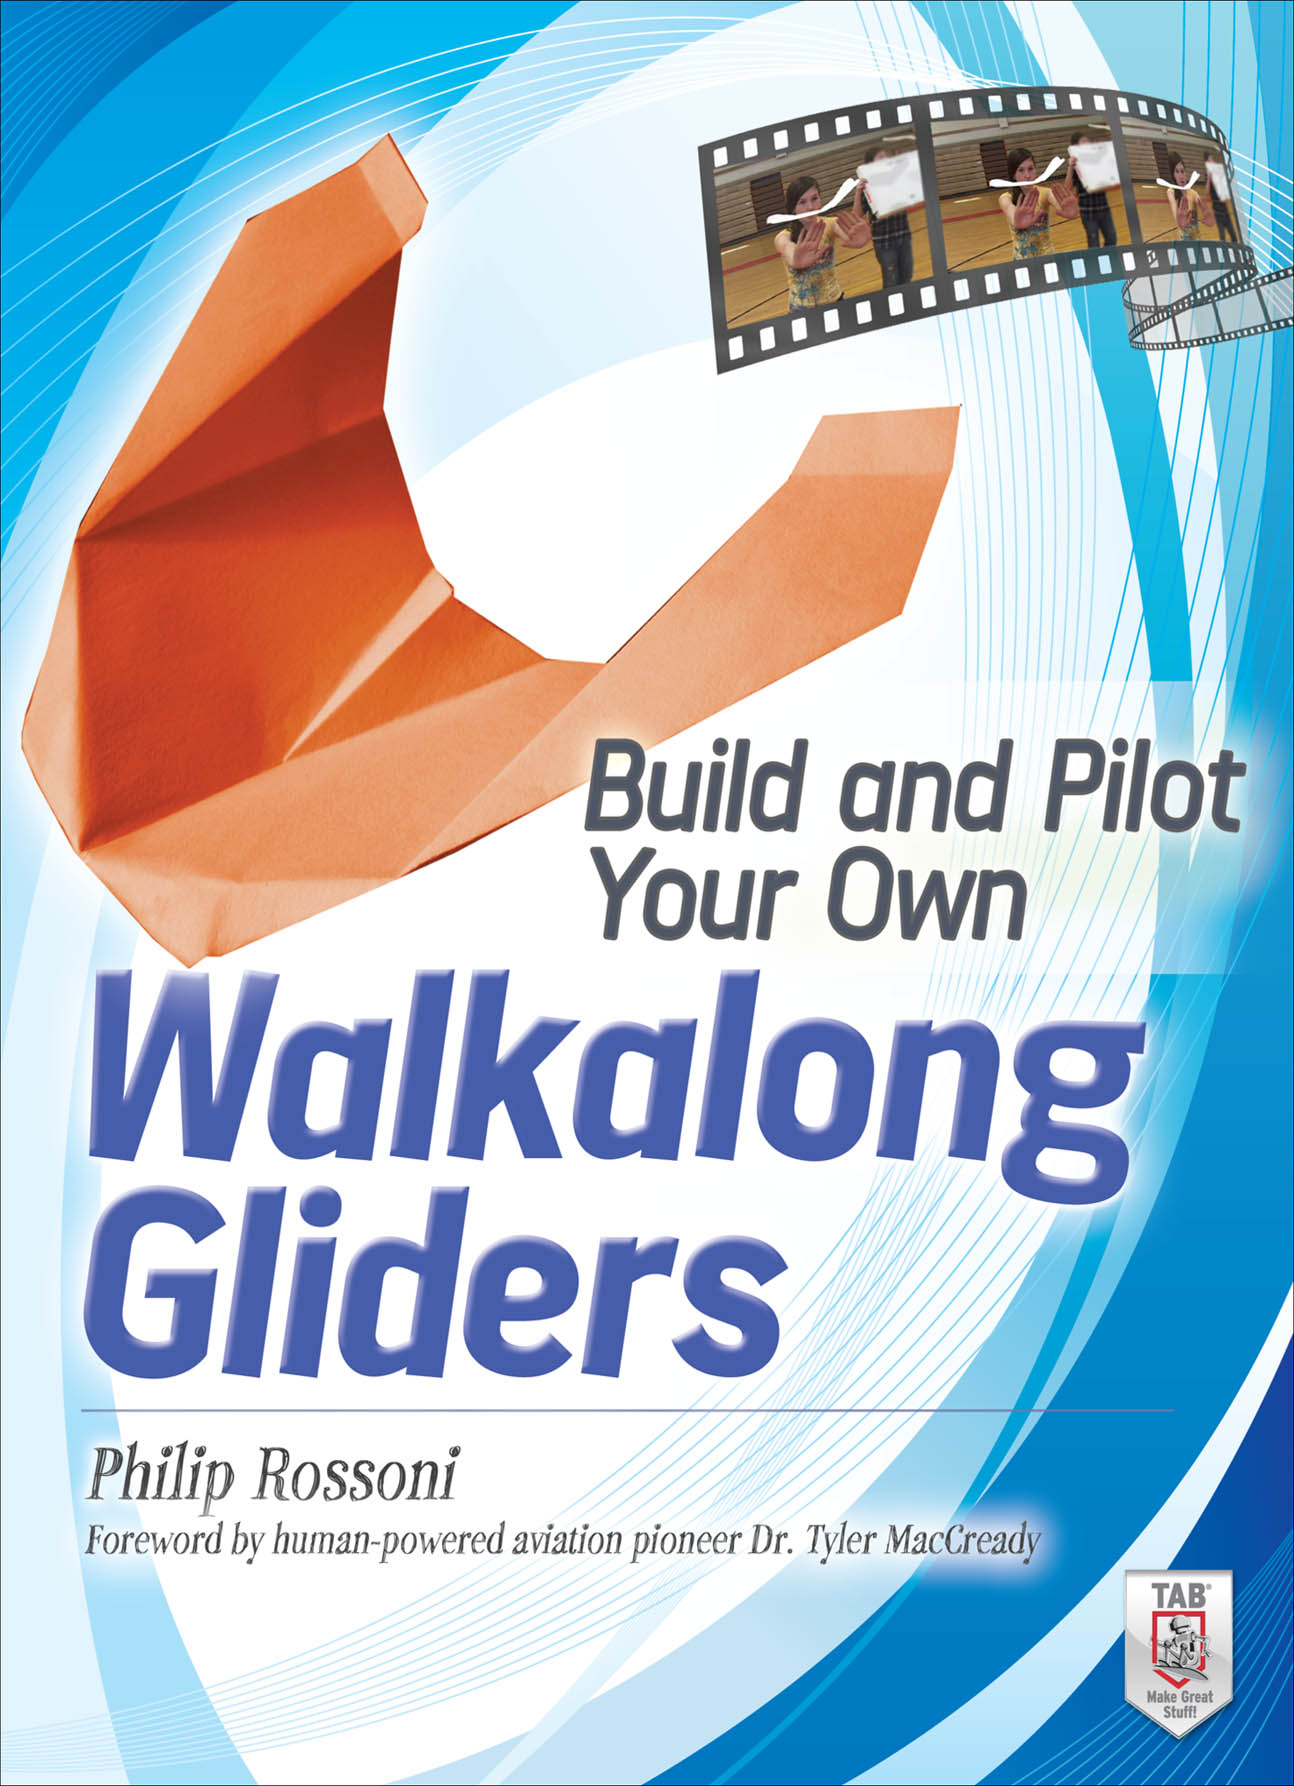 Build and Pilot Your Own Walkalong Gliders By: Philip Rossoni